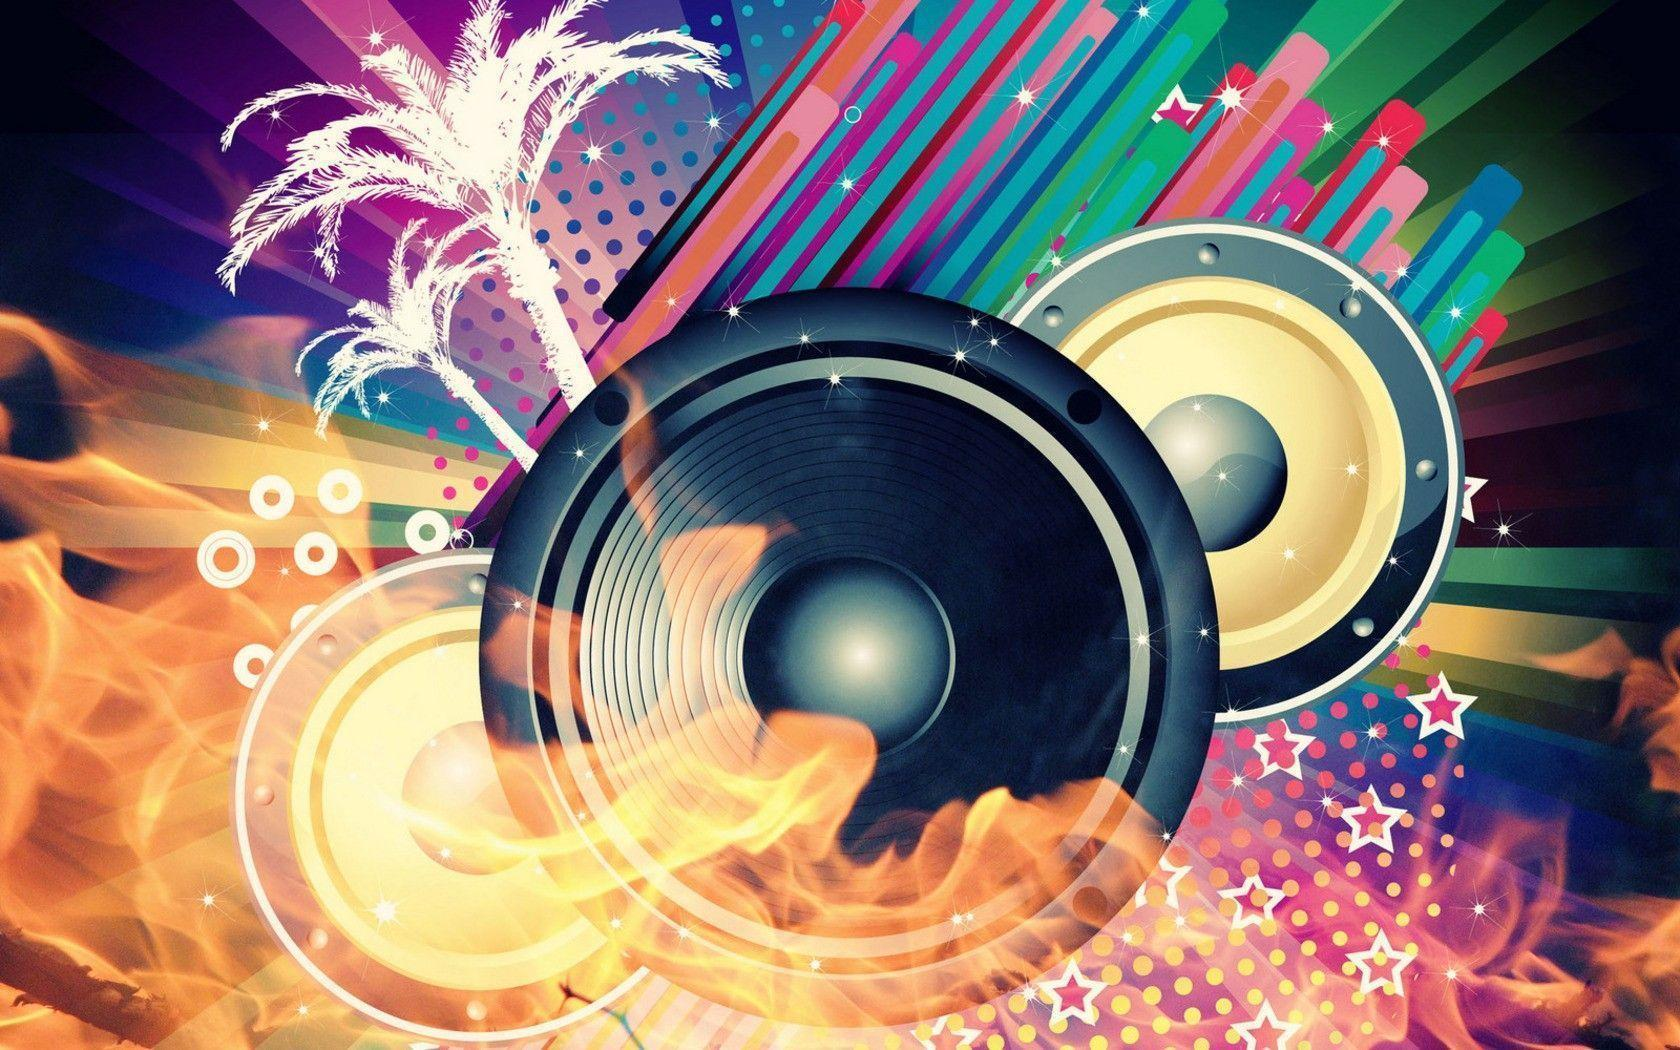 Cool Music Speakers Abstract Music Wallpapers Wallpaper Cave